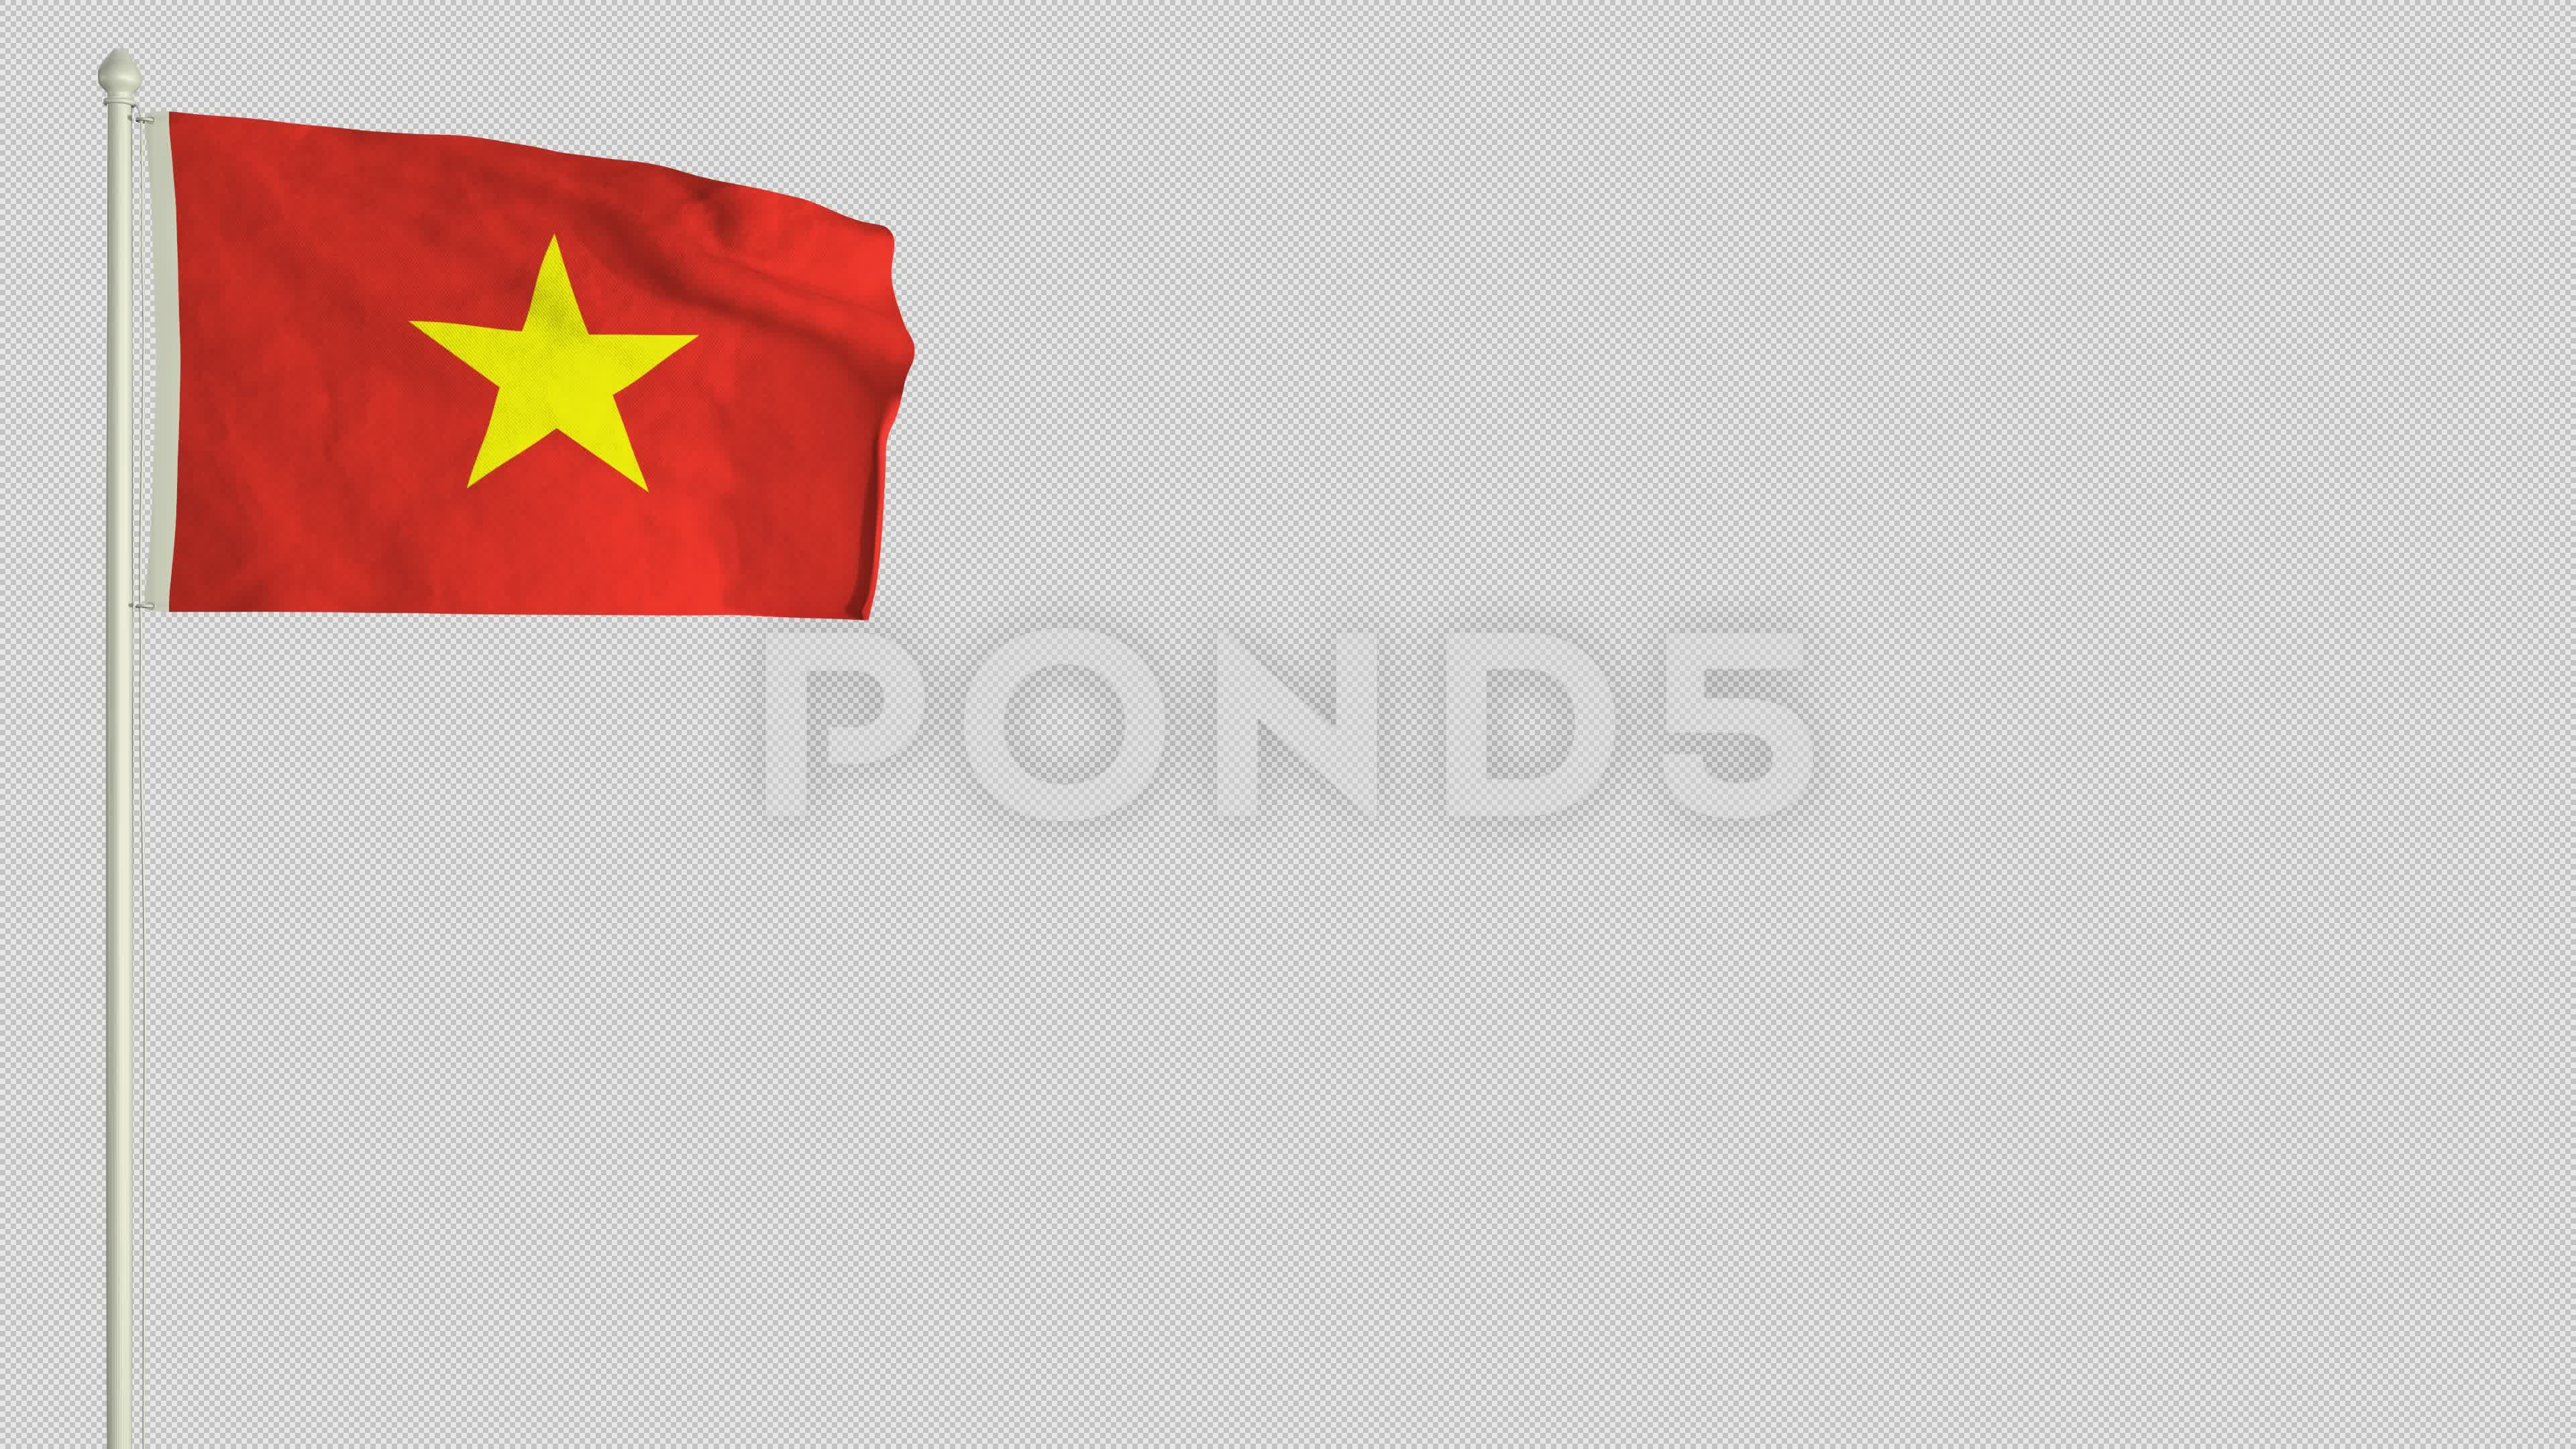 Vietnamese Flag Waving In The Wind With Png Alpha Channel Stock Footage Waving Wind Vietnamese Flag Vietnamese Flag Alpha Channel Vietnamese